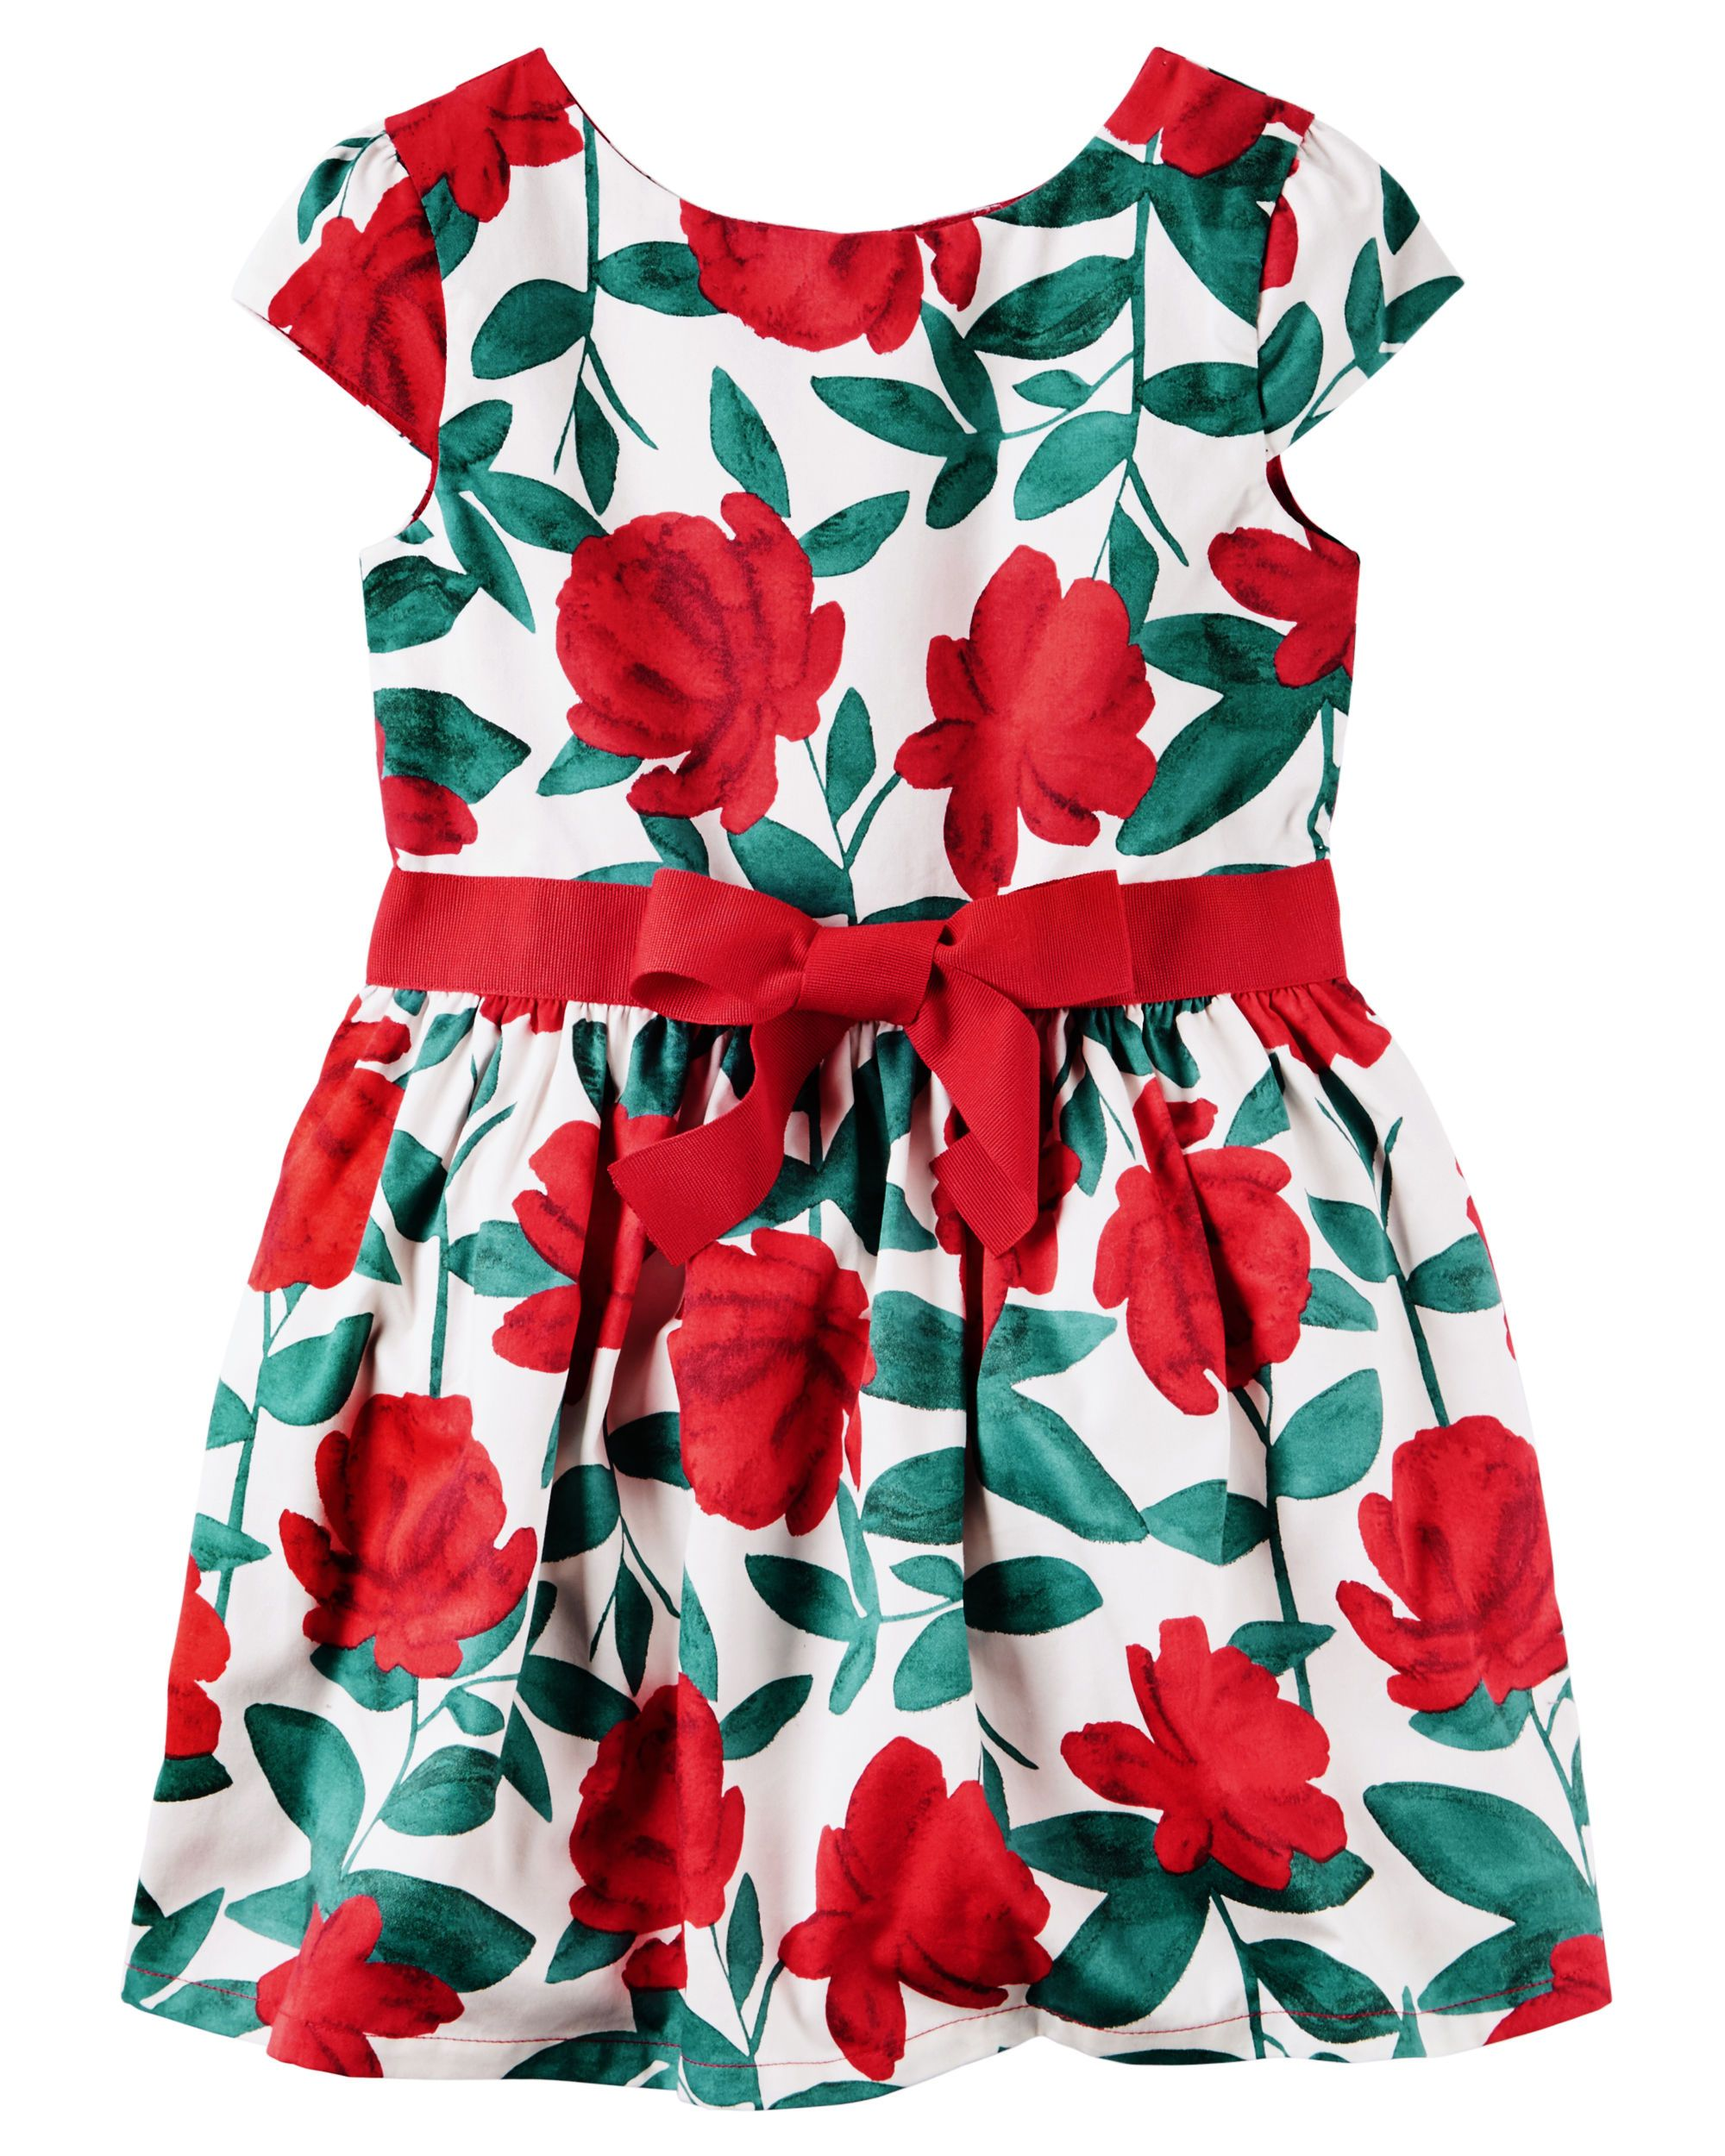 a7294065ac81d Toddler Girl Floral Sateen Dress from Carters.com. Shop clothing &  accessories from a trusted name in kids, toddlers, and baby clothes.